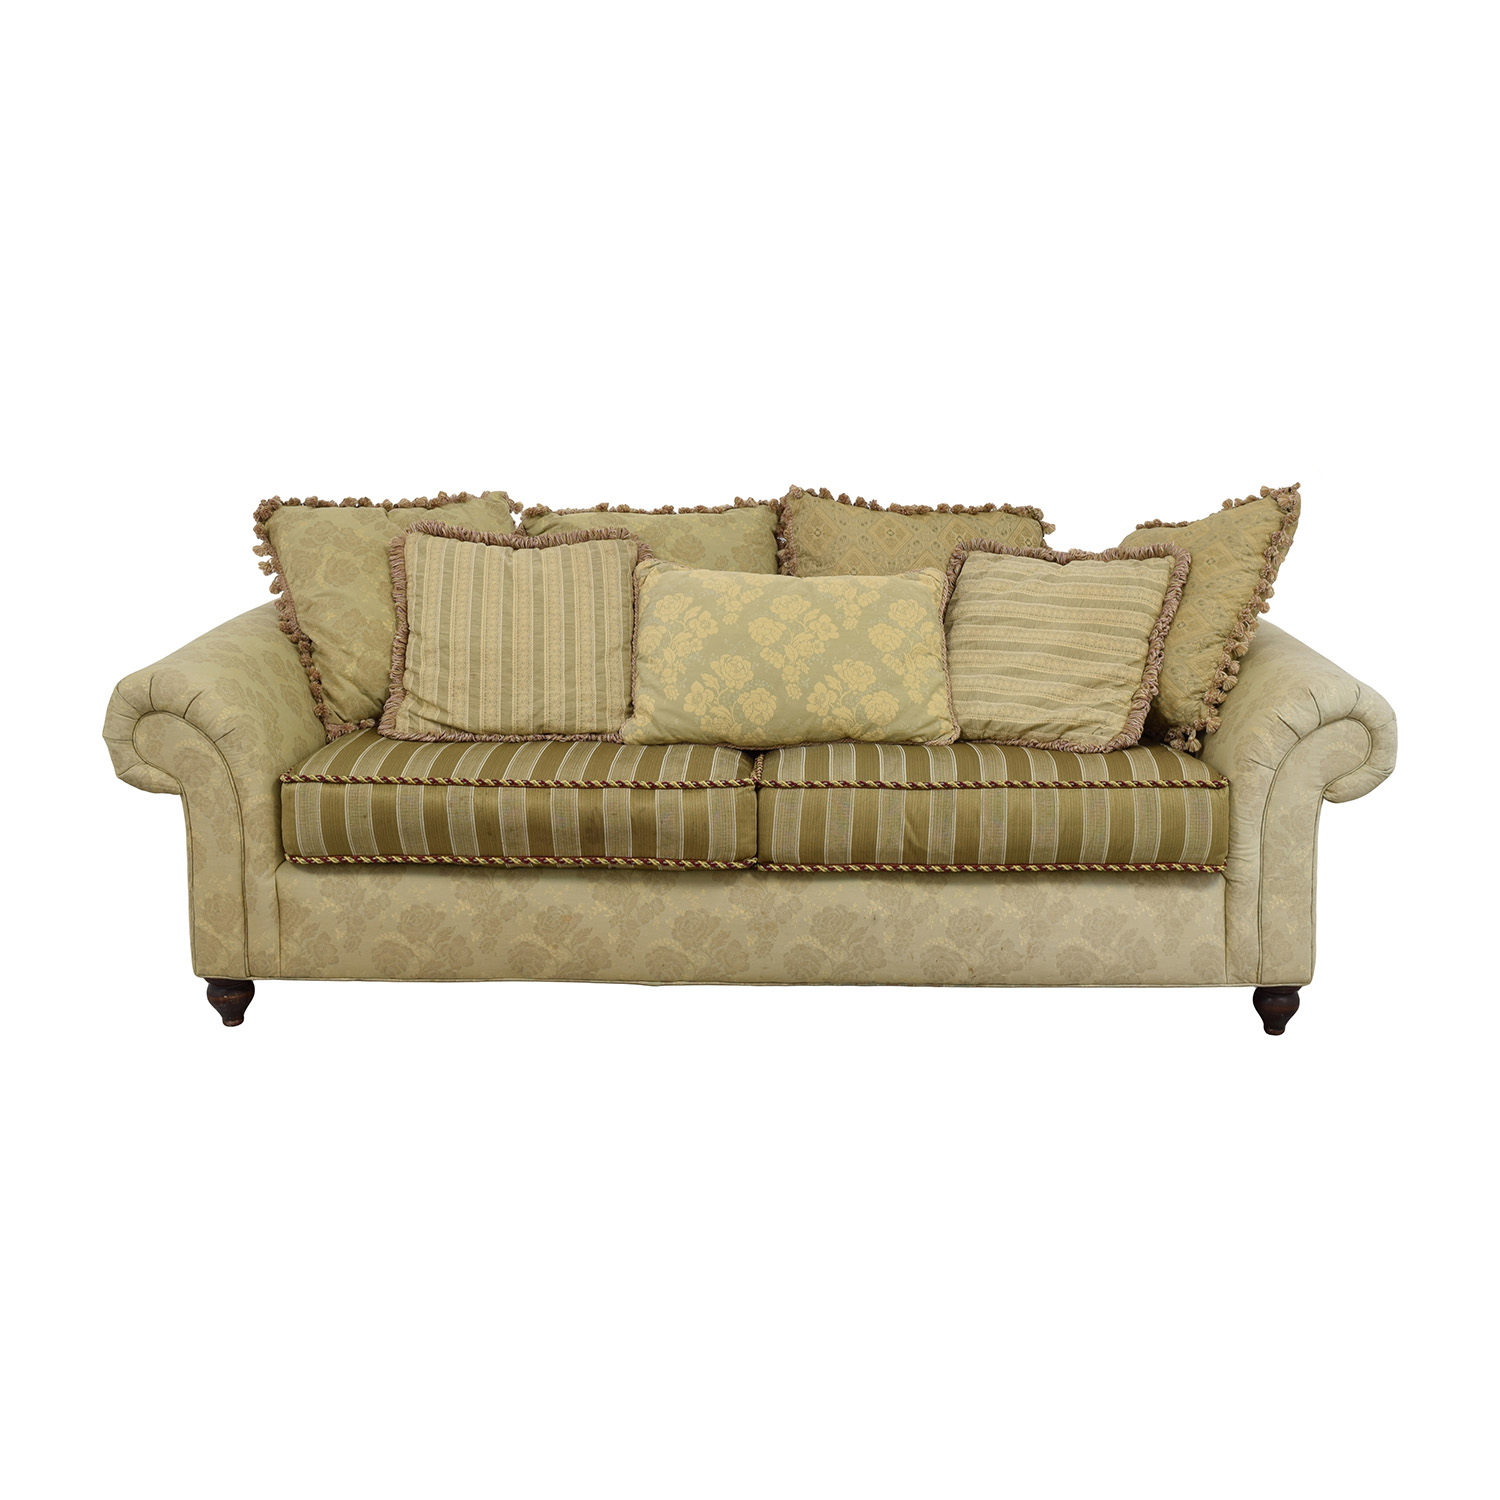 Sofa Lounge Nyc Sofas Nyc Sectional Sofas Ikea Nyc You Thesofa